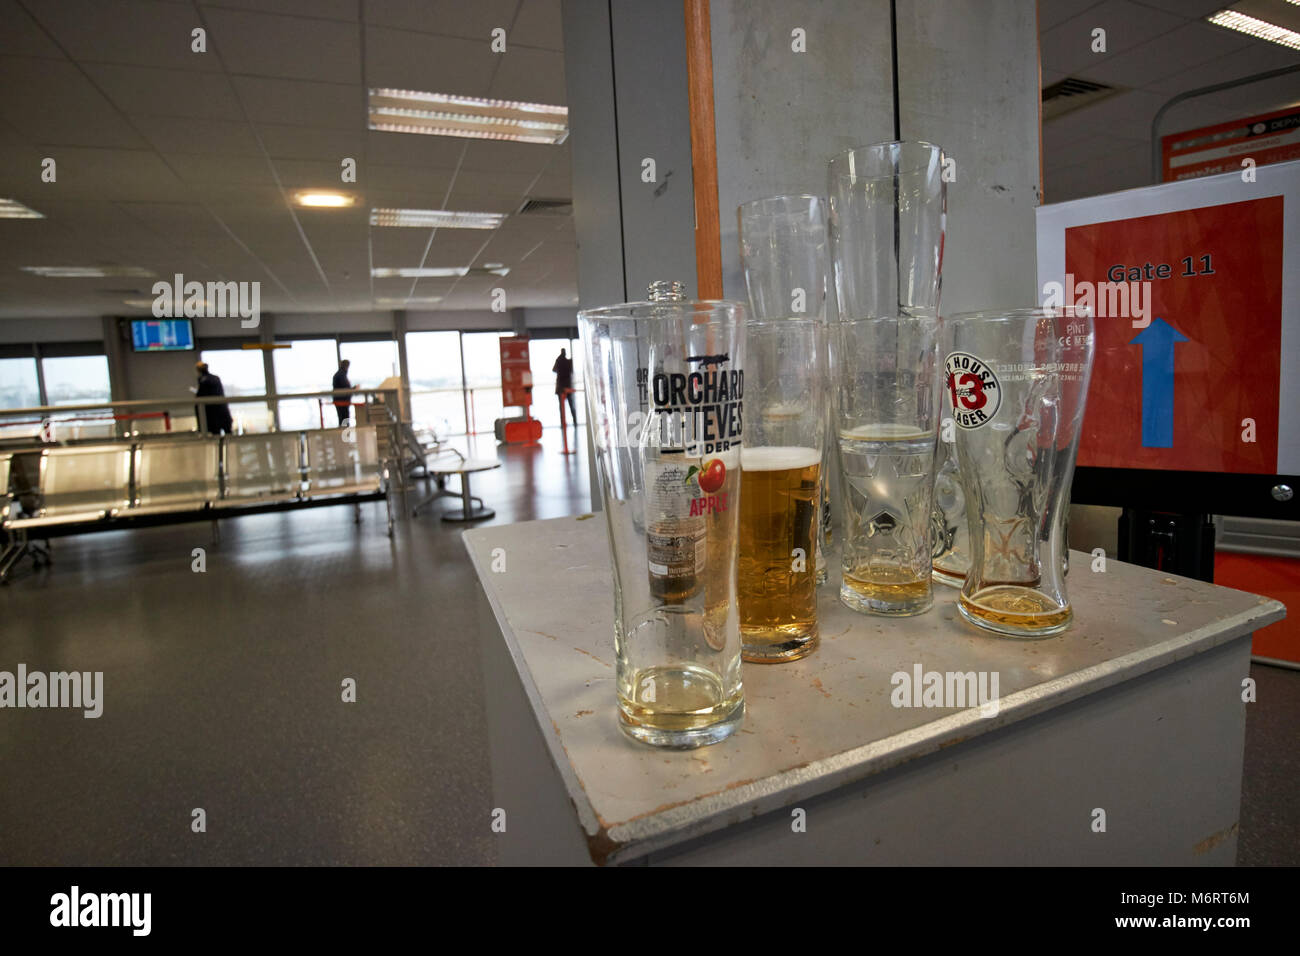 empty and half finished pints of alcohol left at an airport departure lounge before boarding plane in the uk - Stock Image